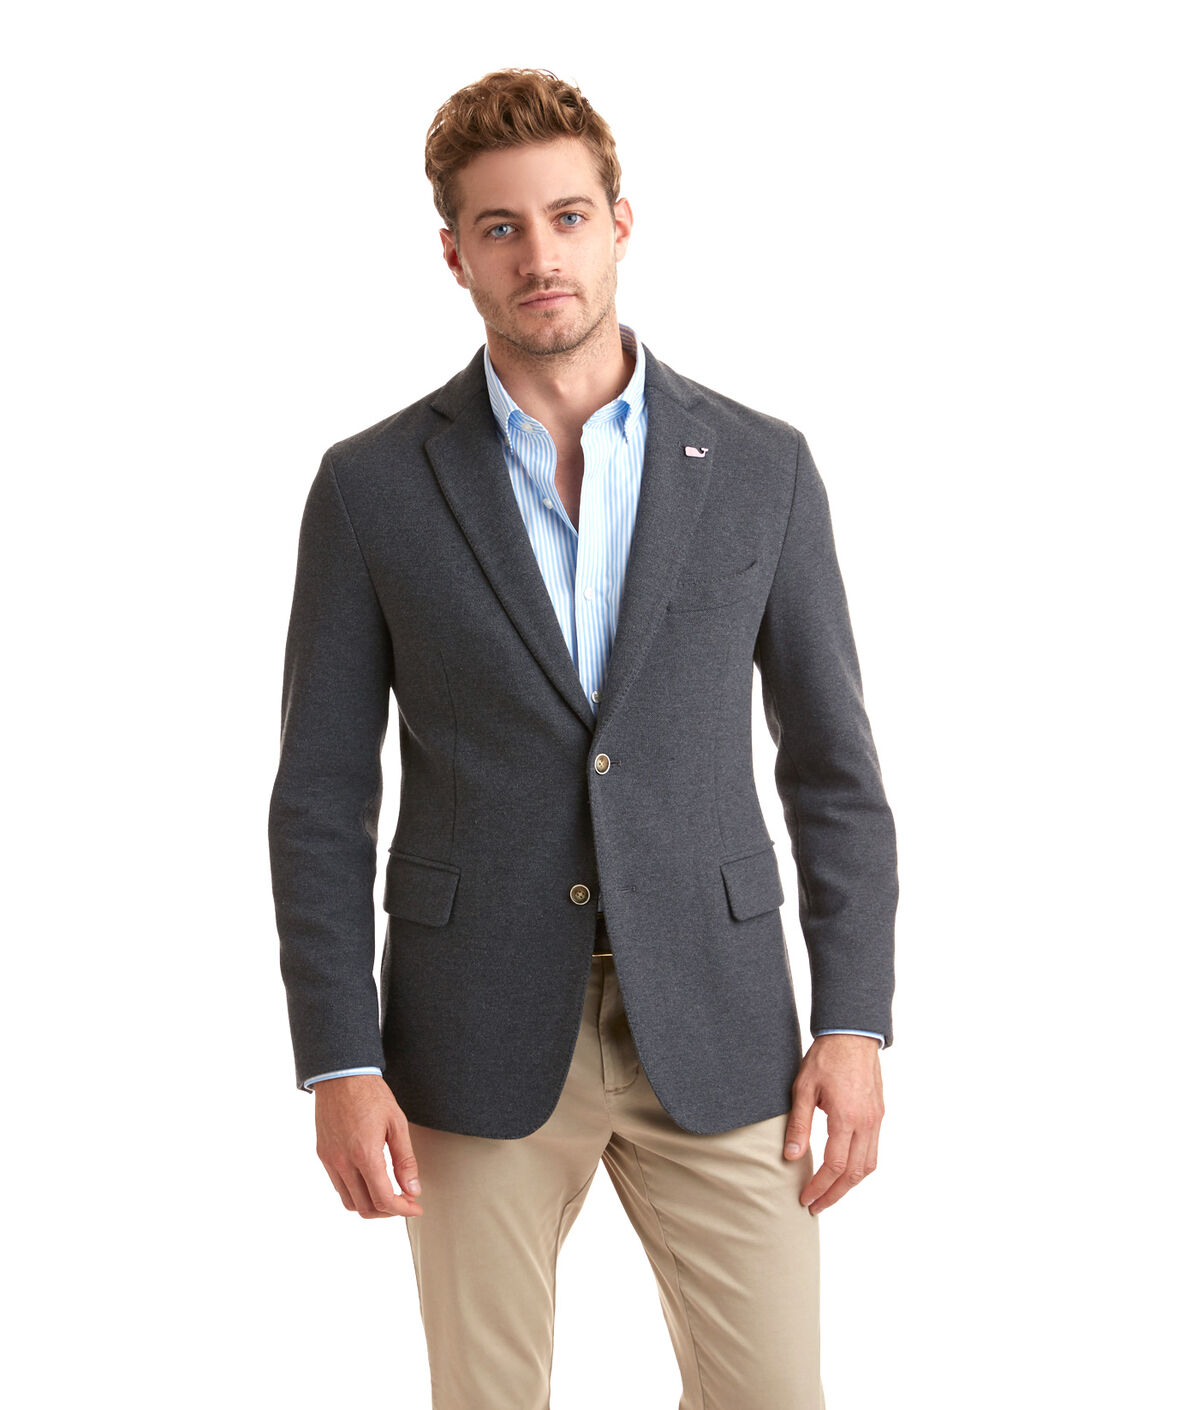 Men's Blazers and Sport Coats from Vineyard Vines